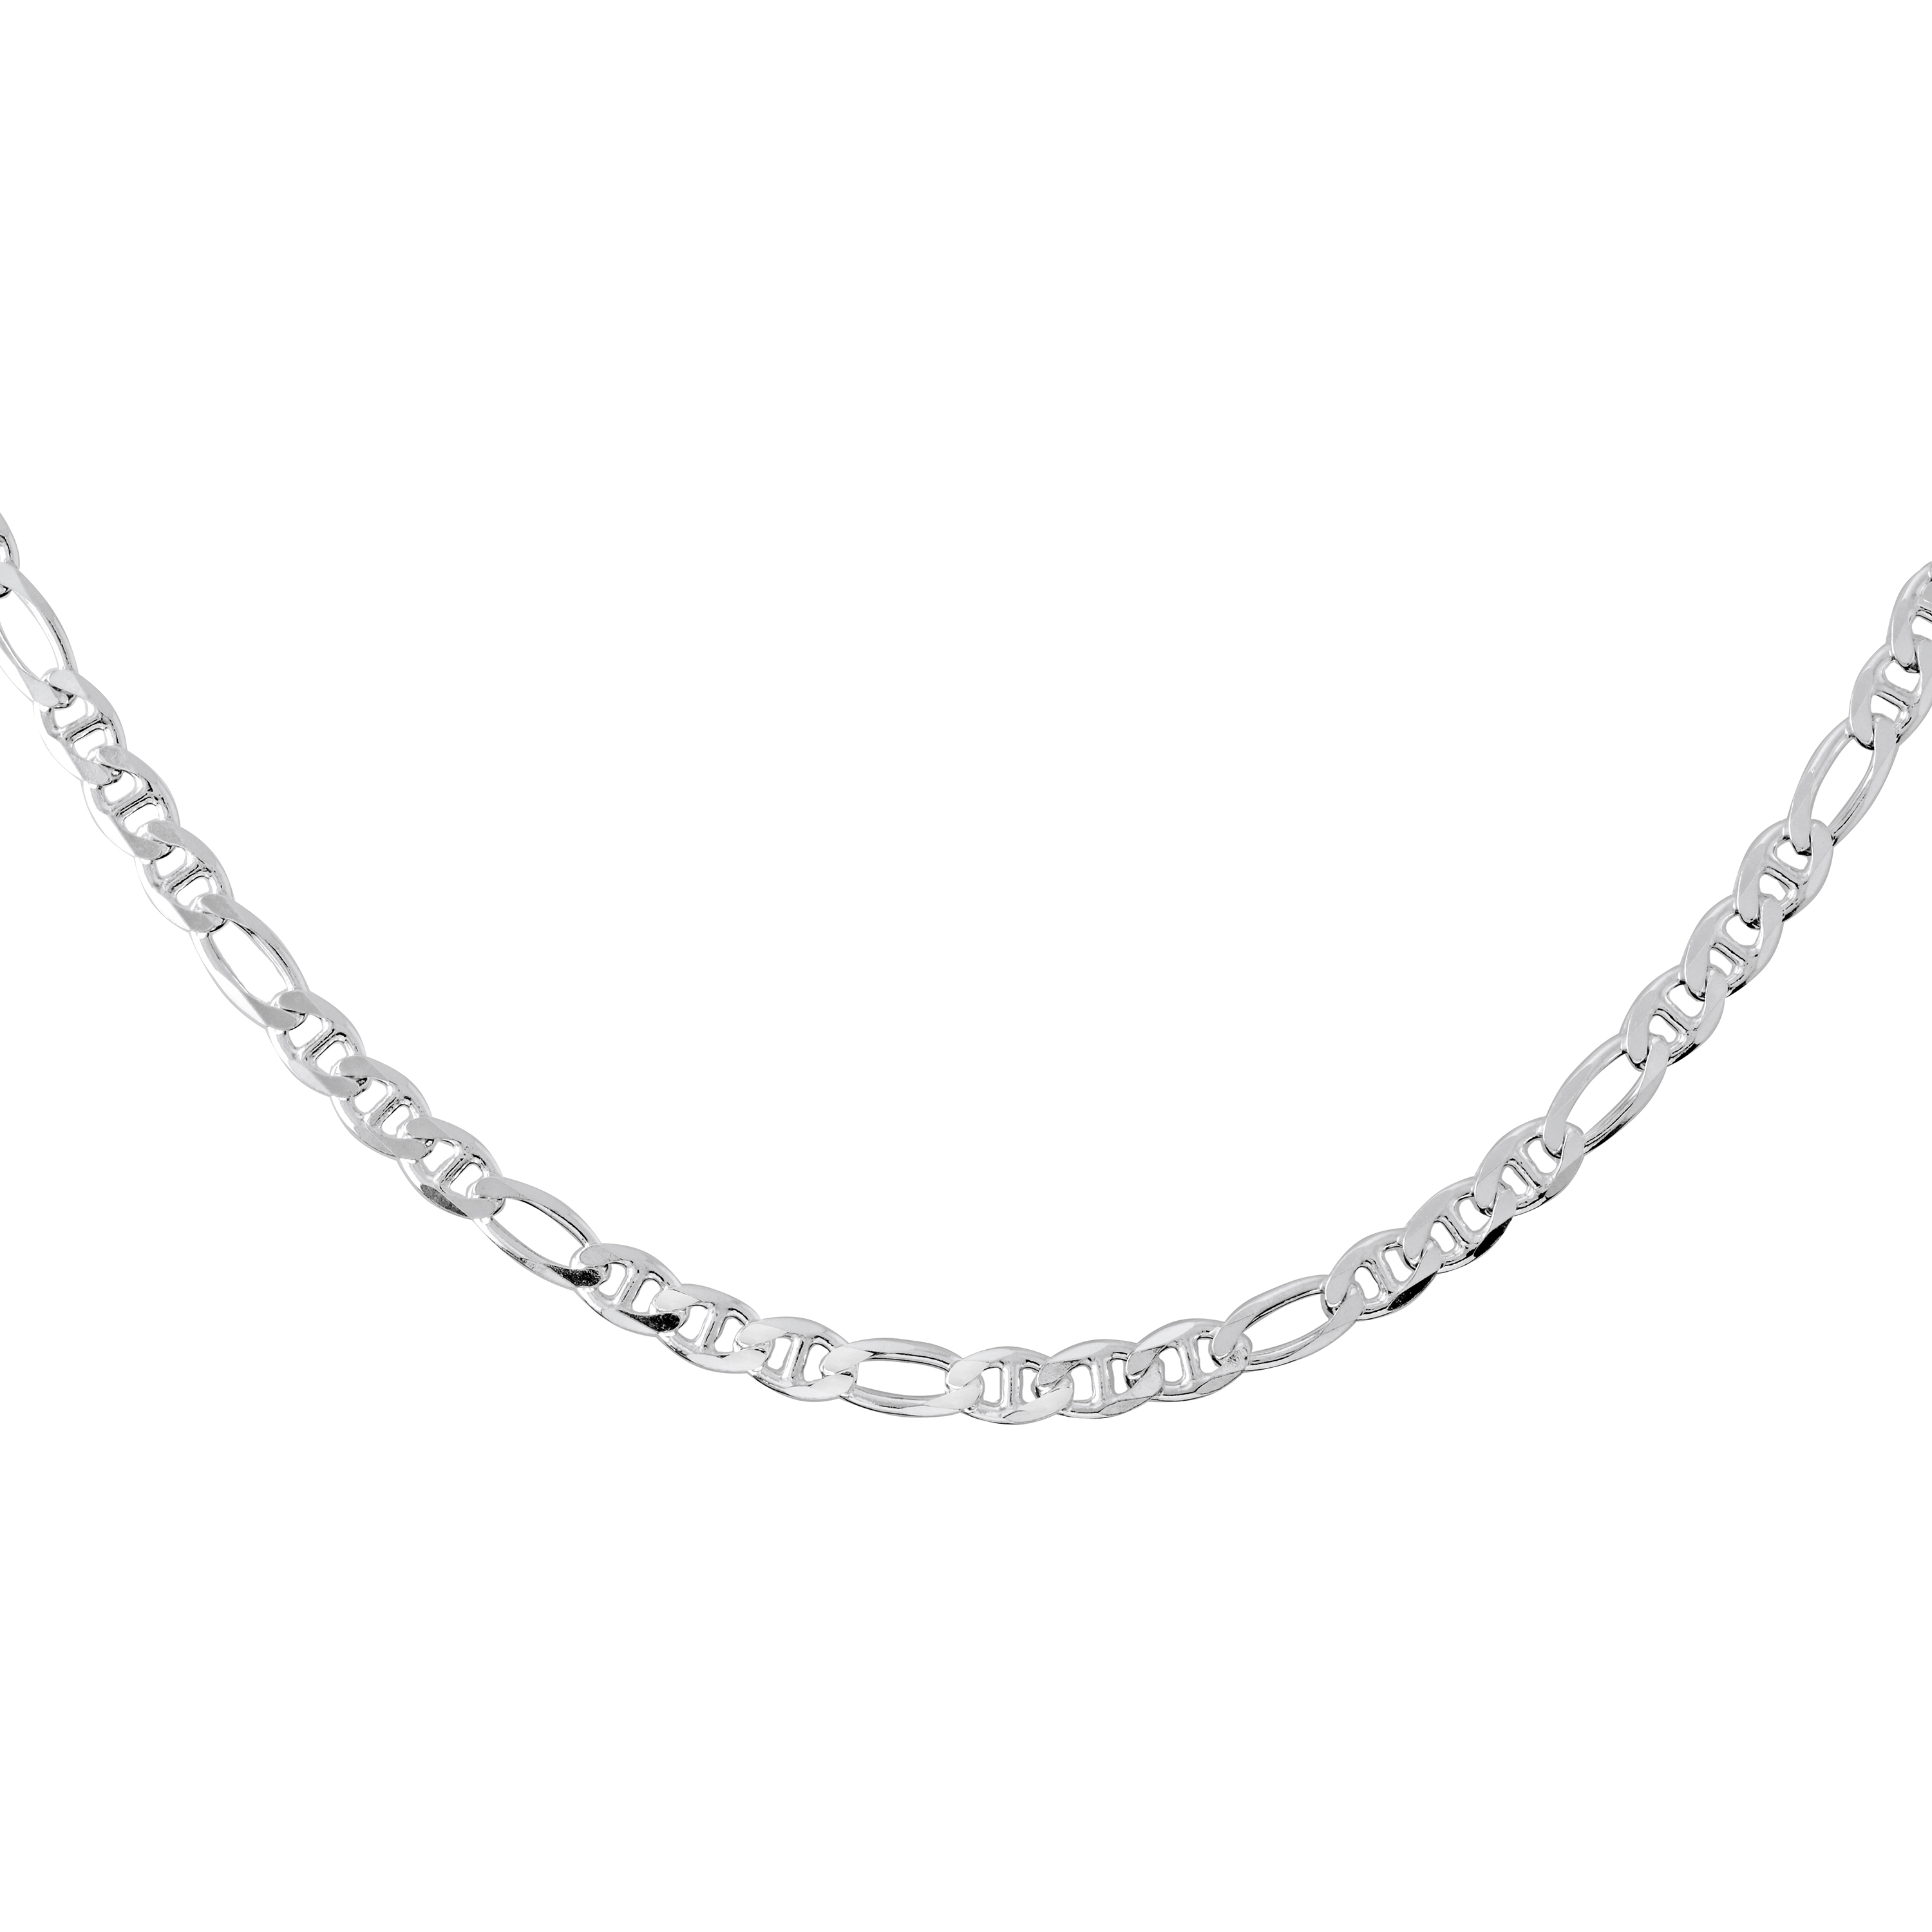 Chaîne figarucci 20'' - Argent sterling